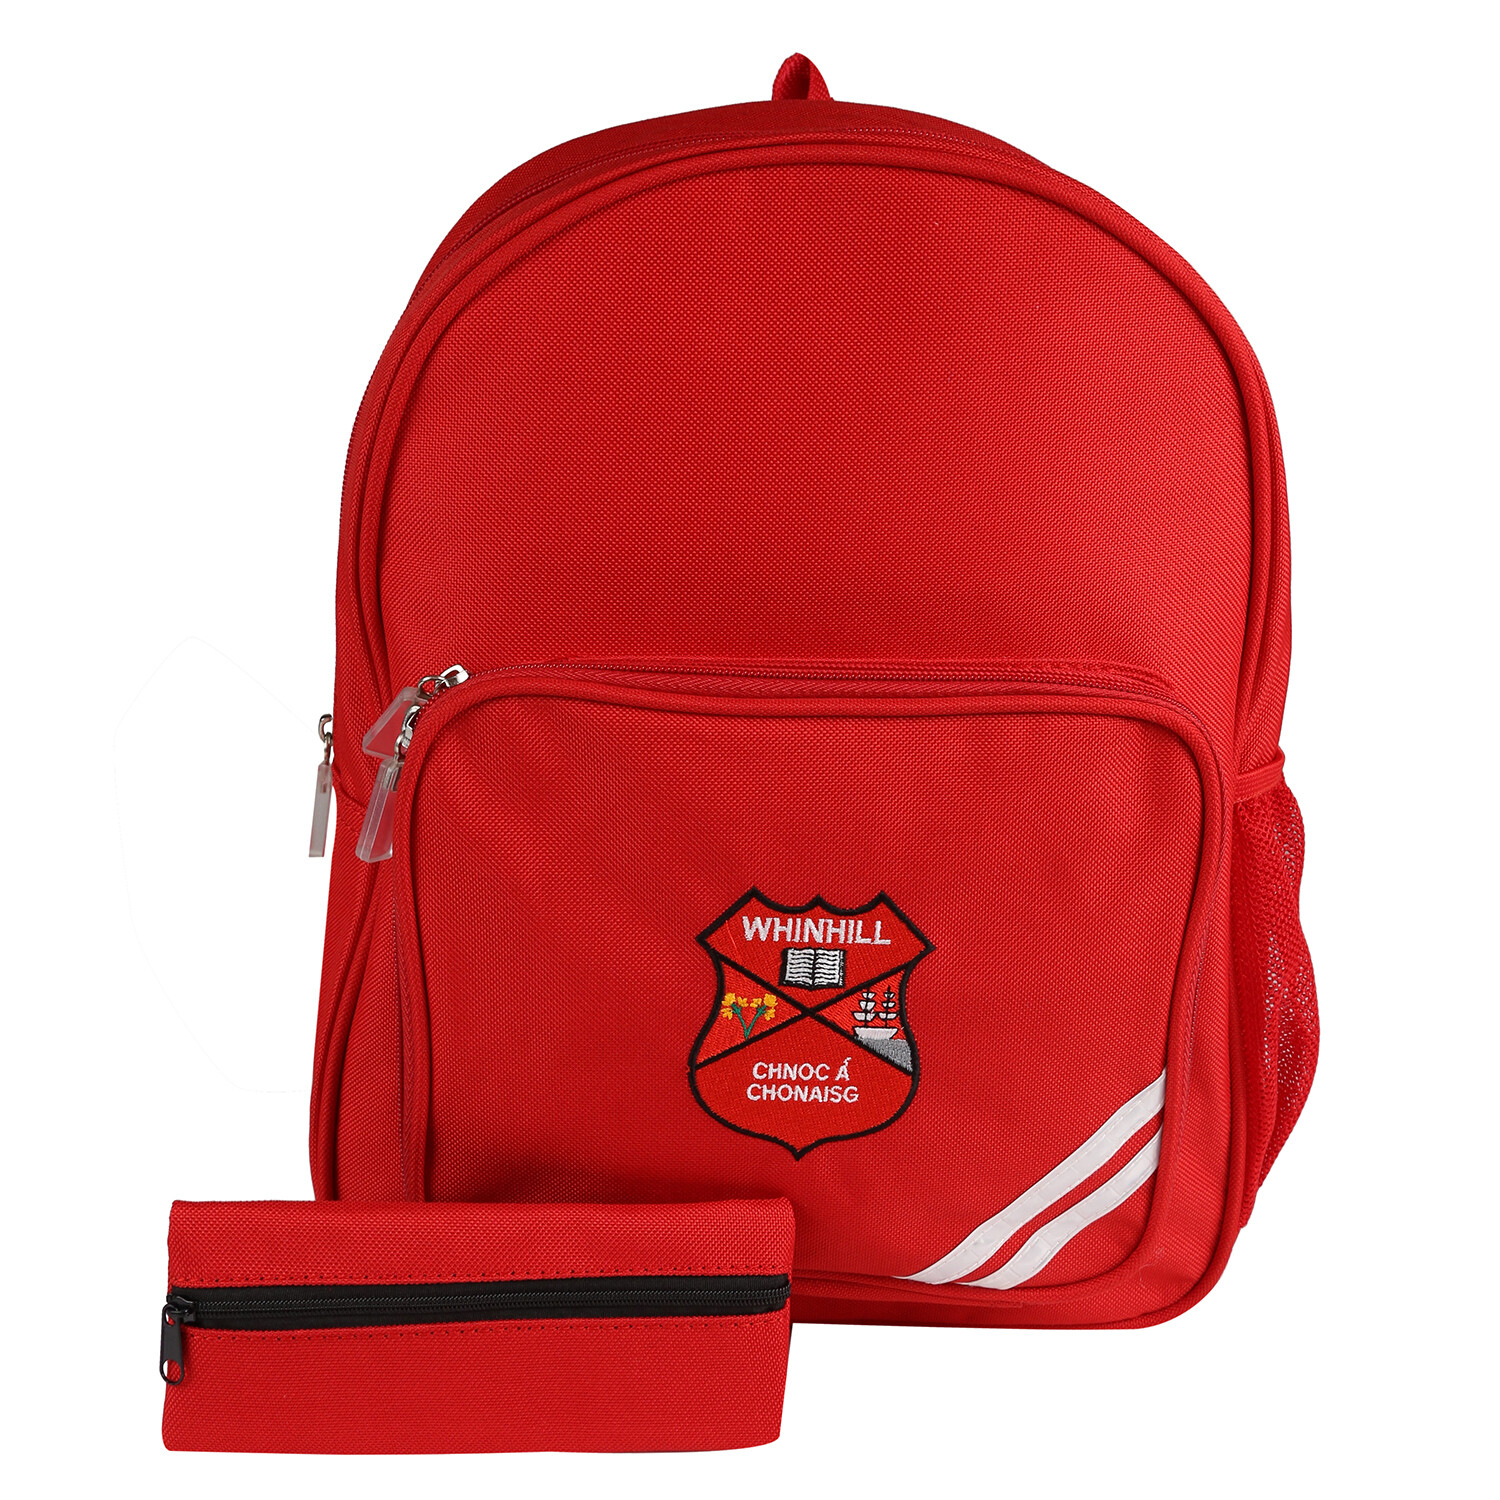 Whinhill Nursery Backpack